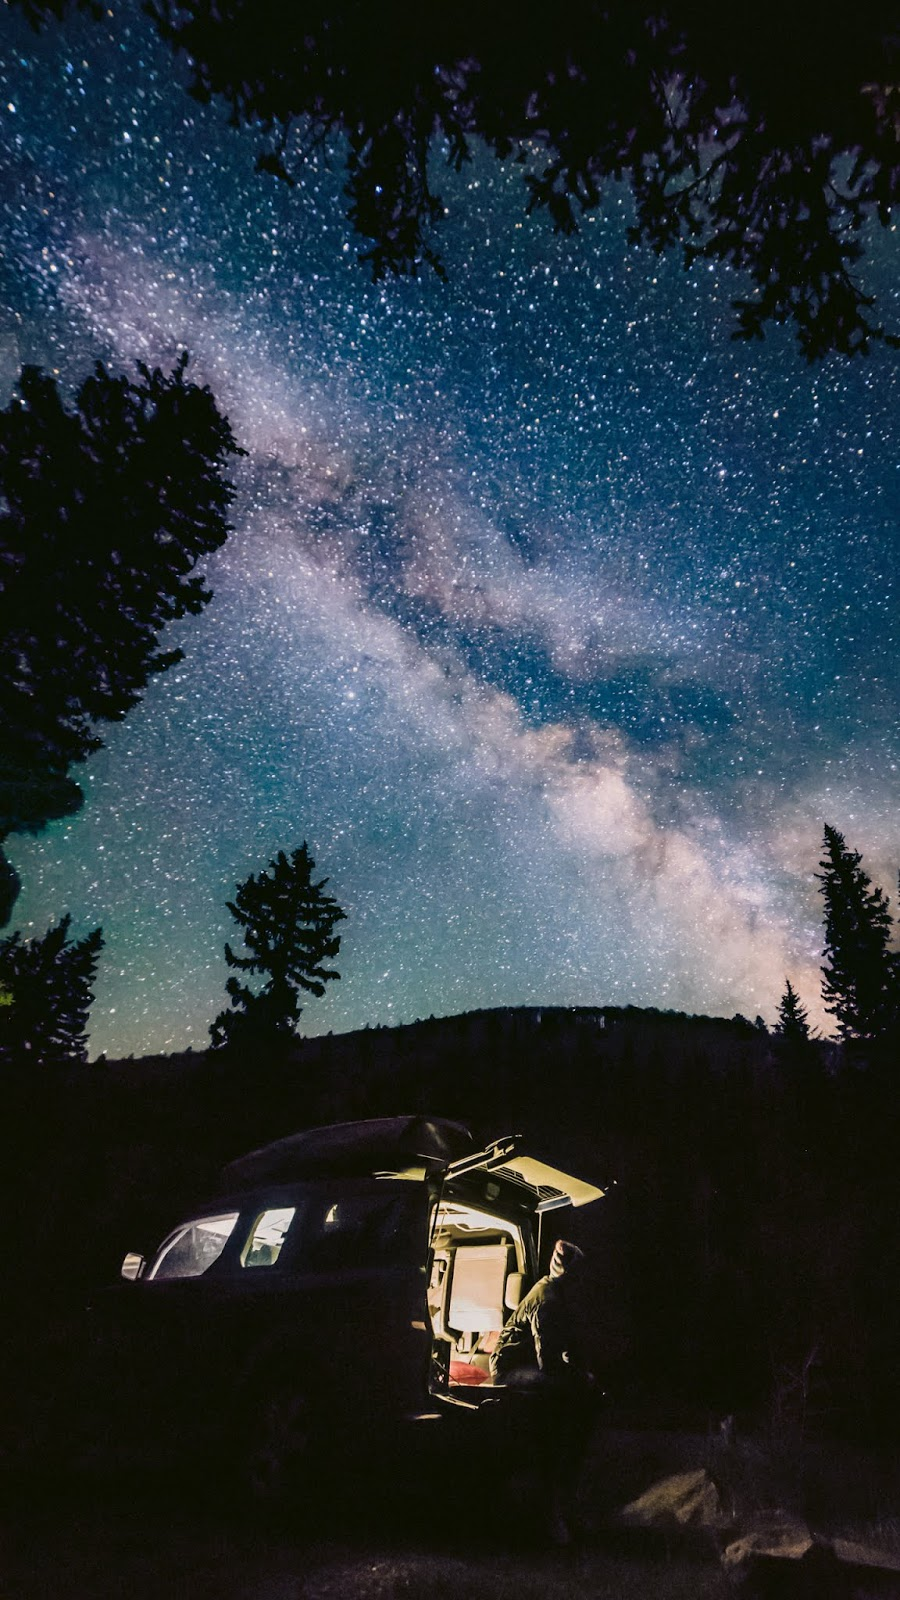 Camping in the starry night